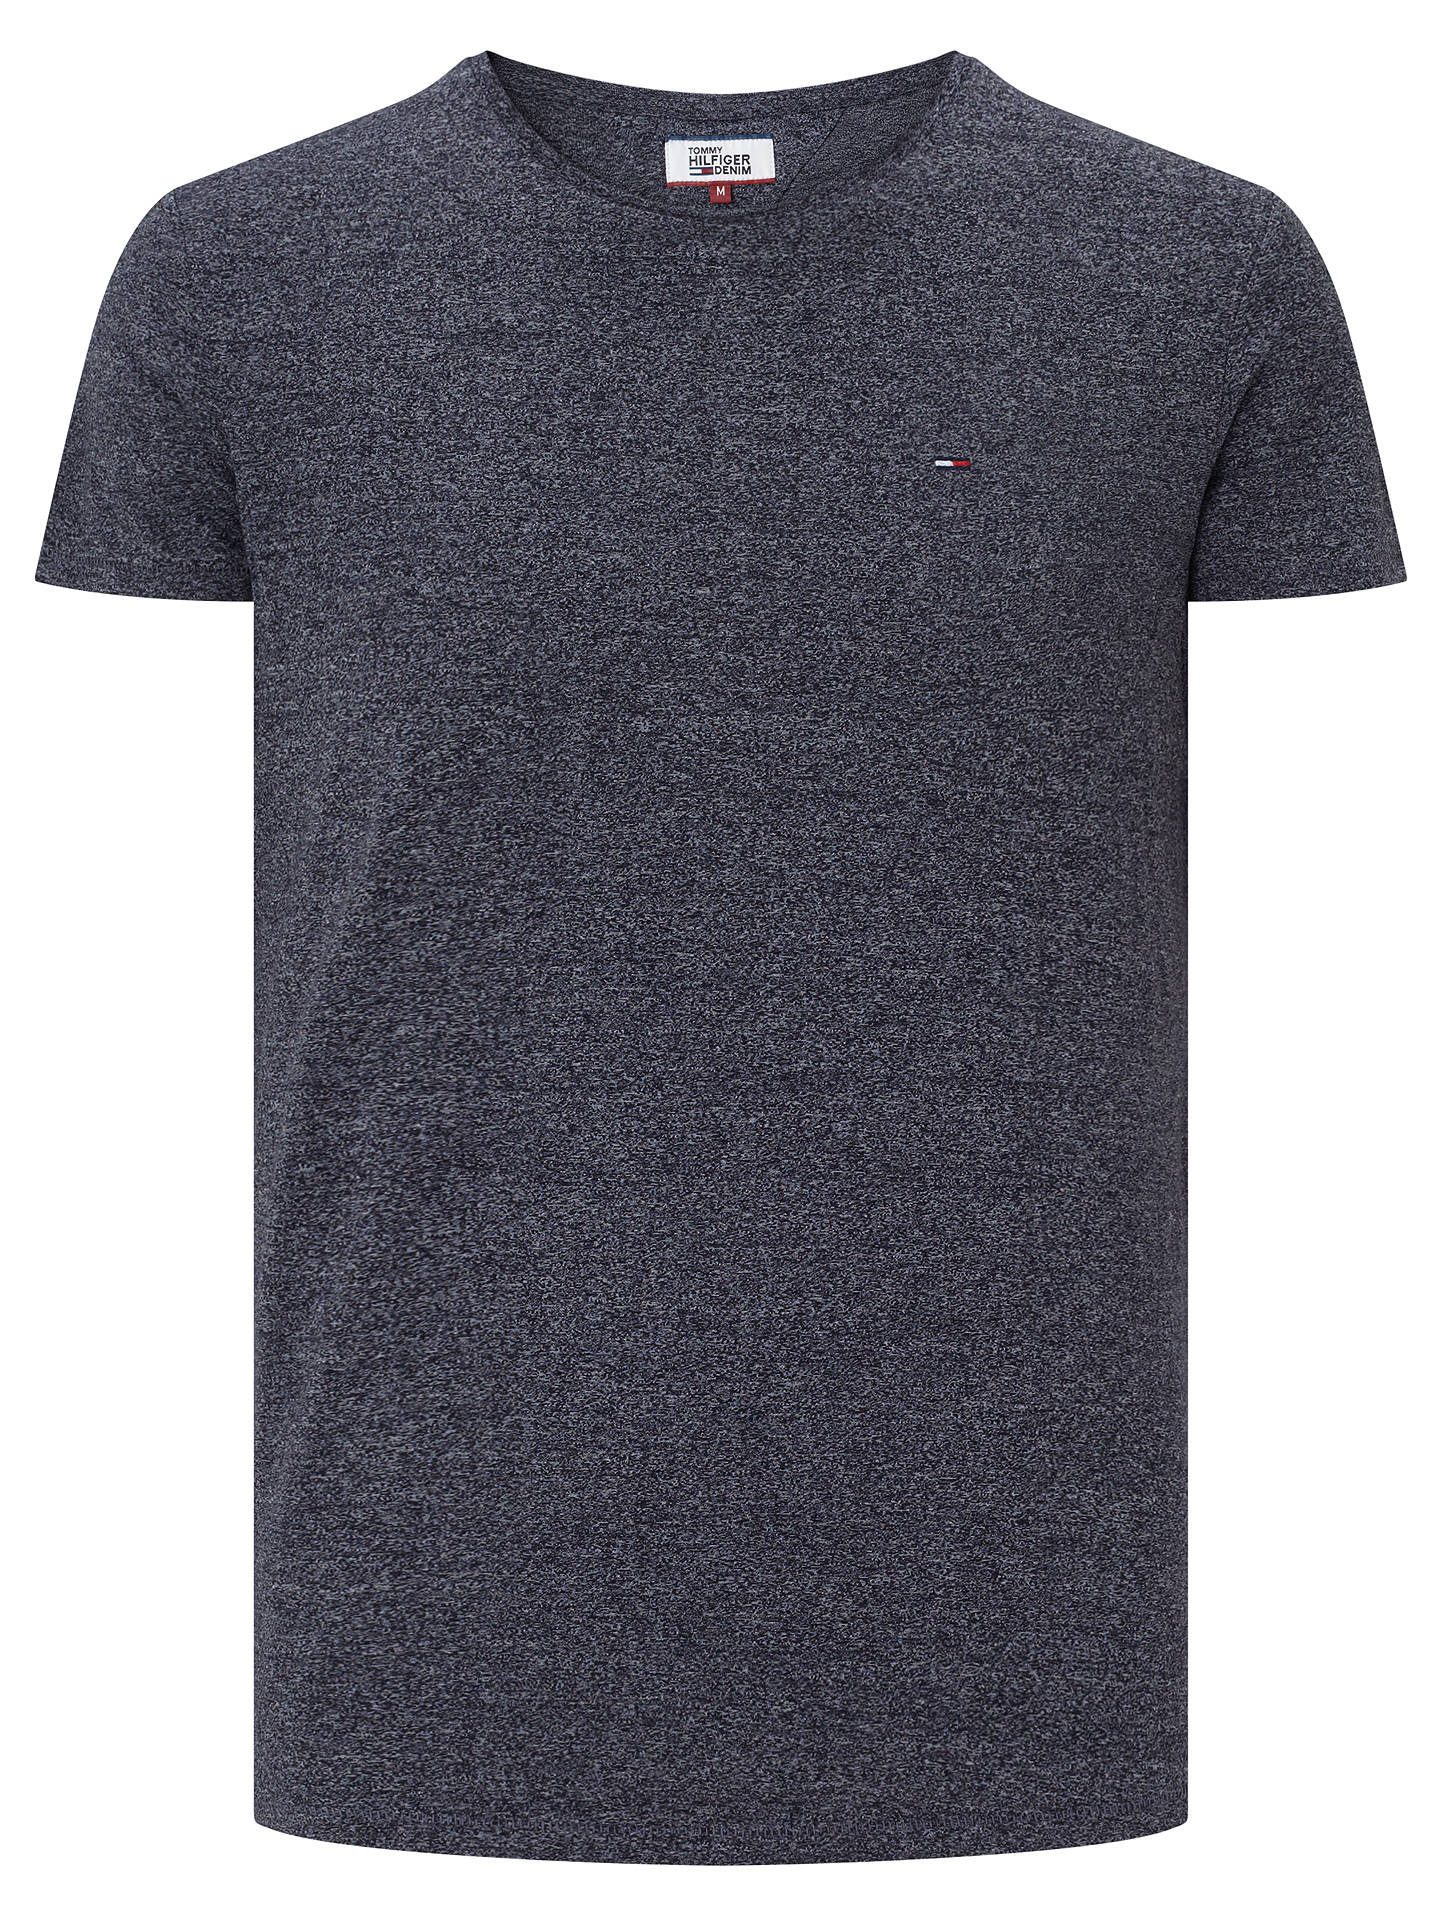 Buy Tommy Jeans Basic Crew Neck T-Shirt, Vulcan, S Online at johnlewis.com